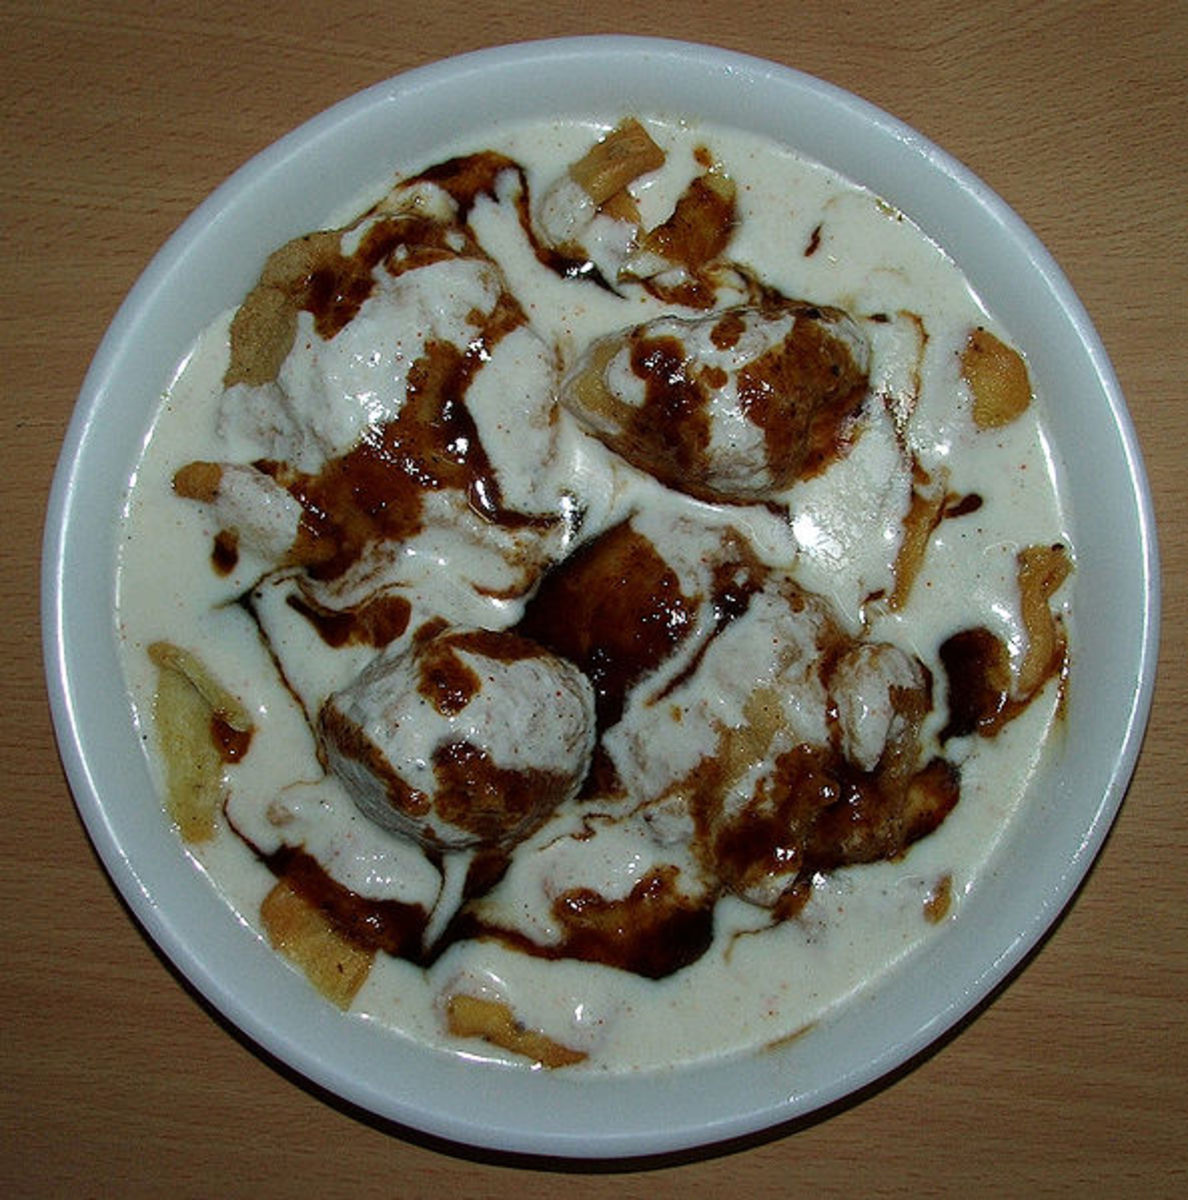 This salad contained crisp lenthil crackers soaked in curd or yogurt swirled with tamarind chutney and boiled potatoes